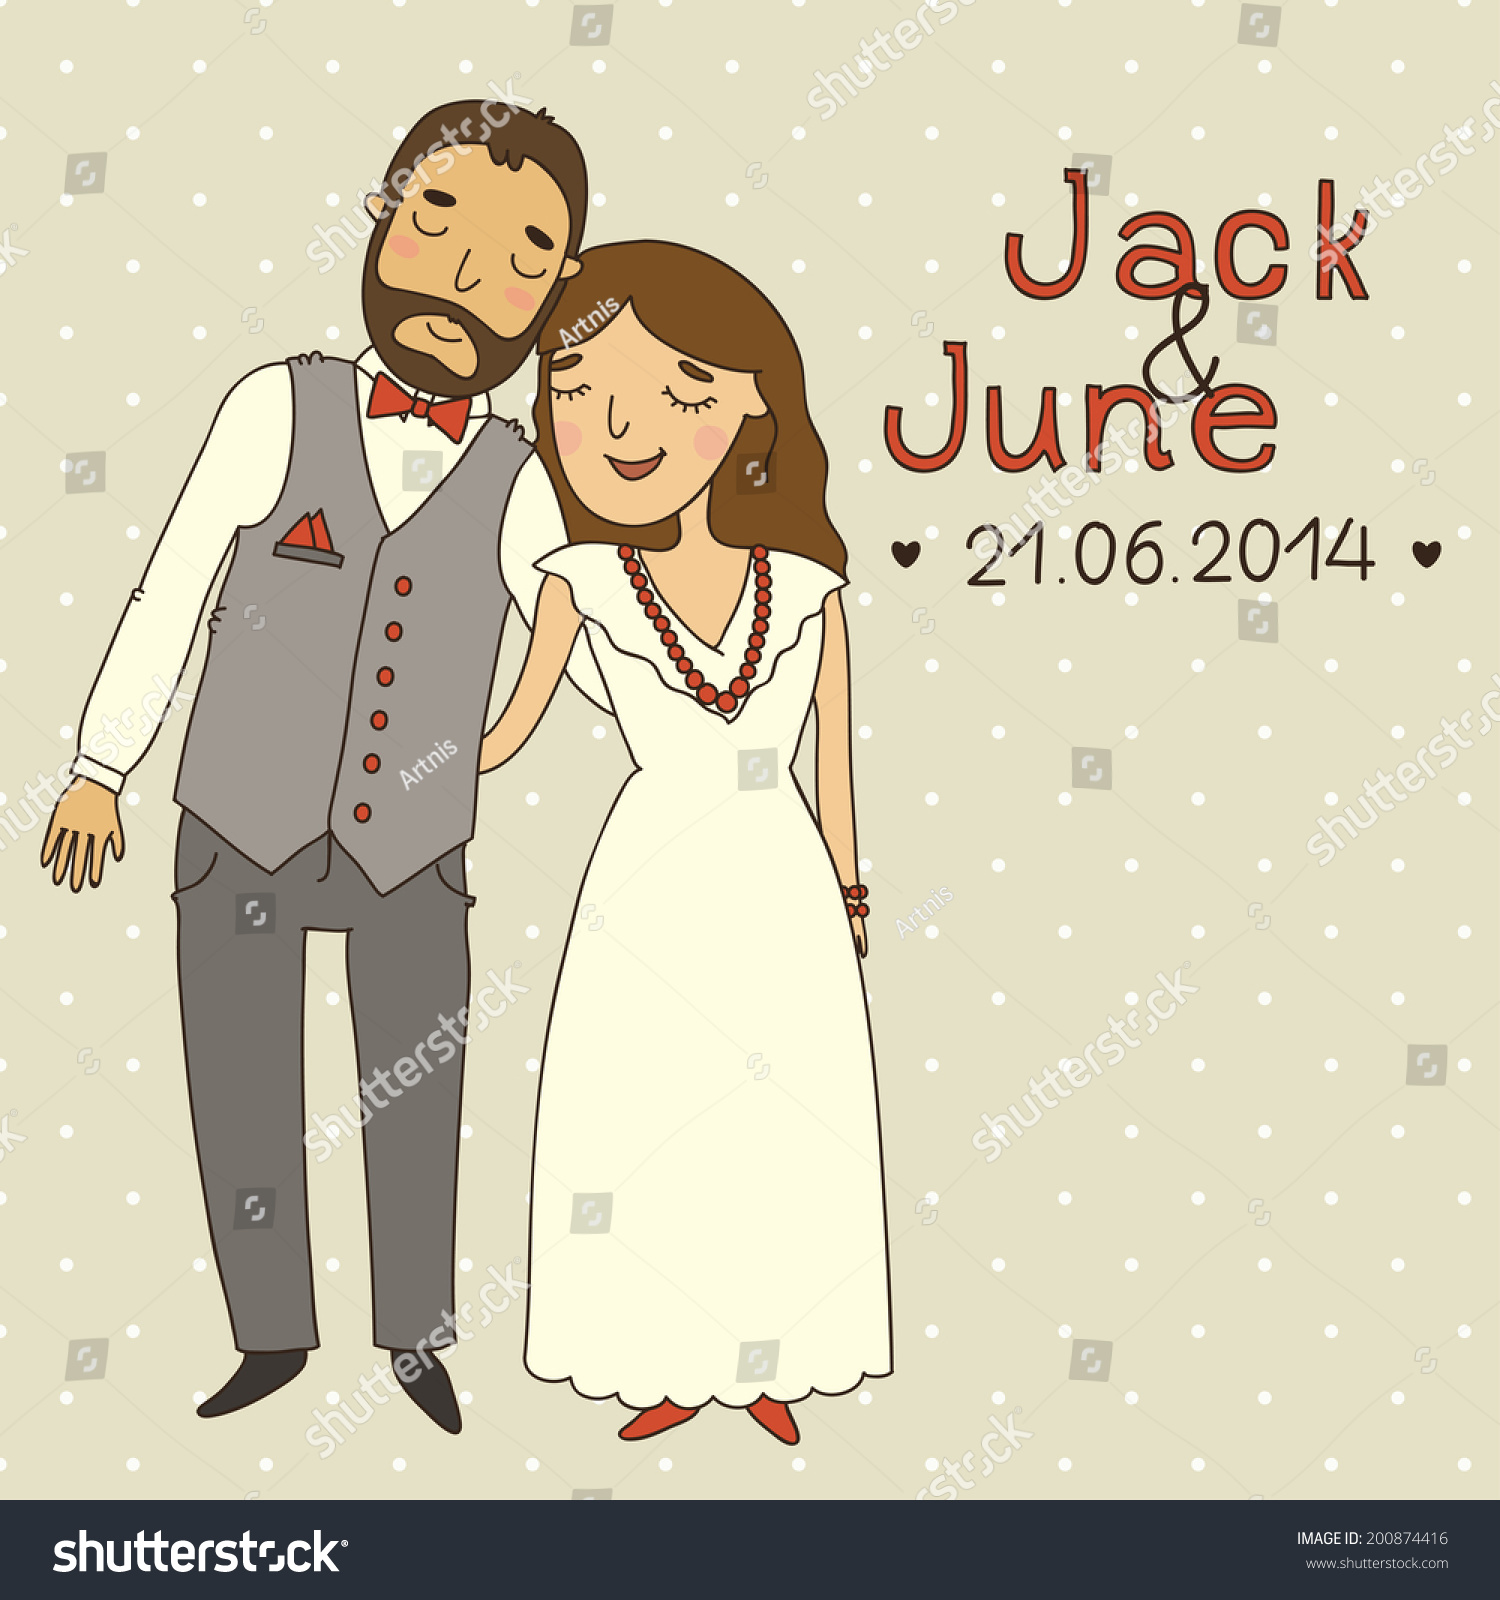 Wedding Invitation Cartoon Couple Save Date Stock Vector (Royalty ...